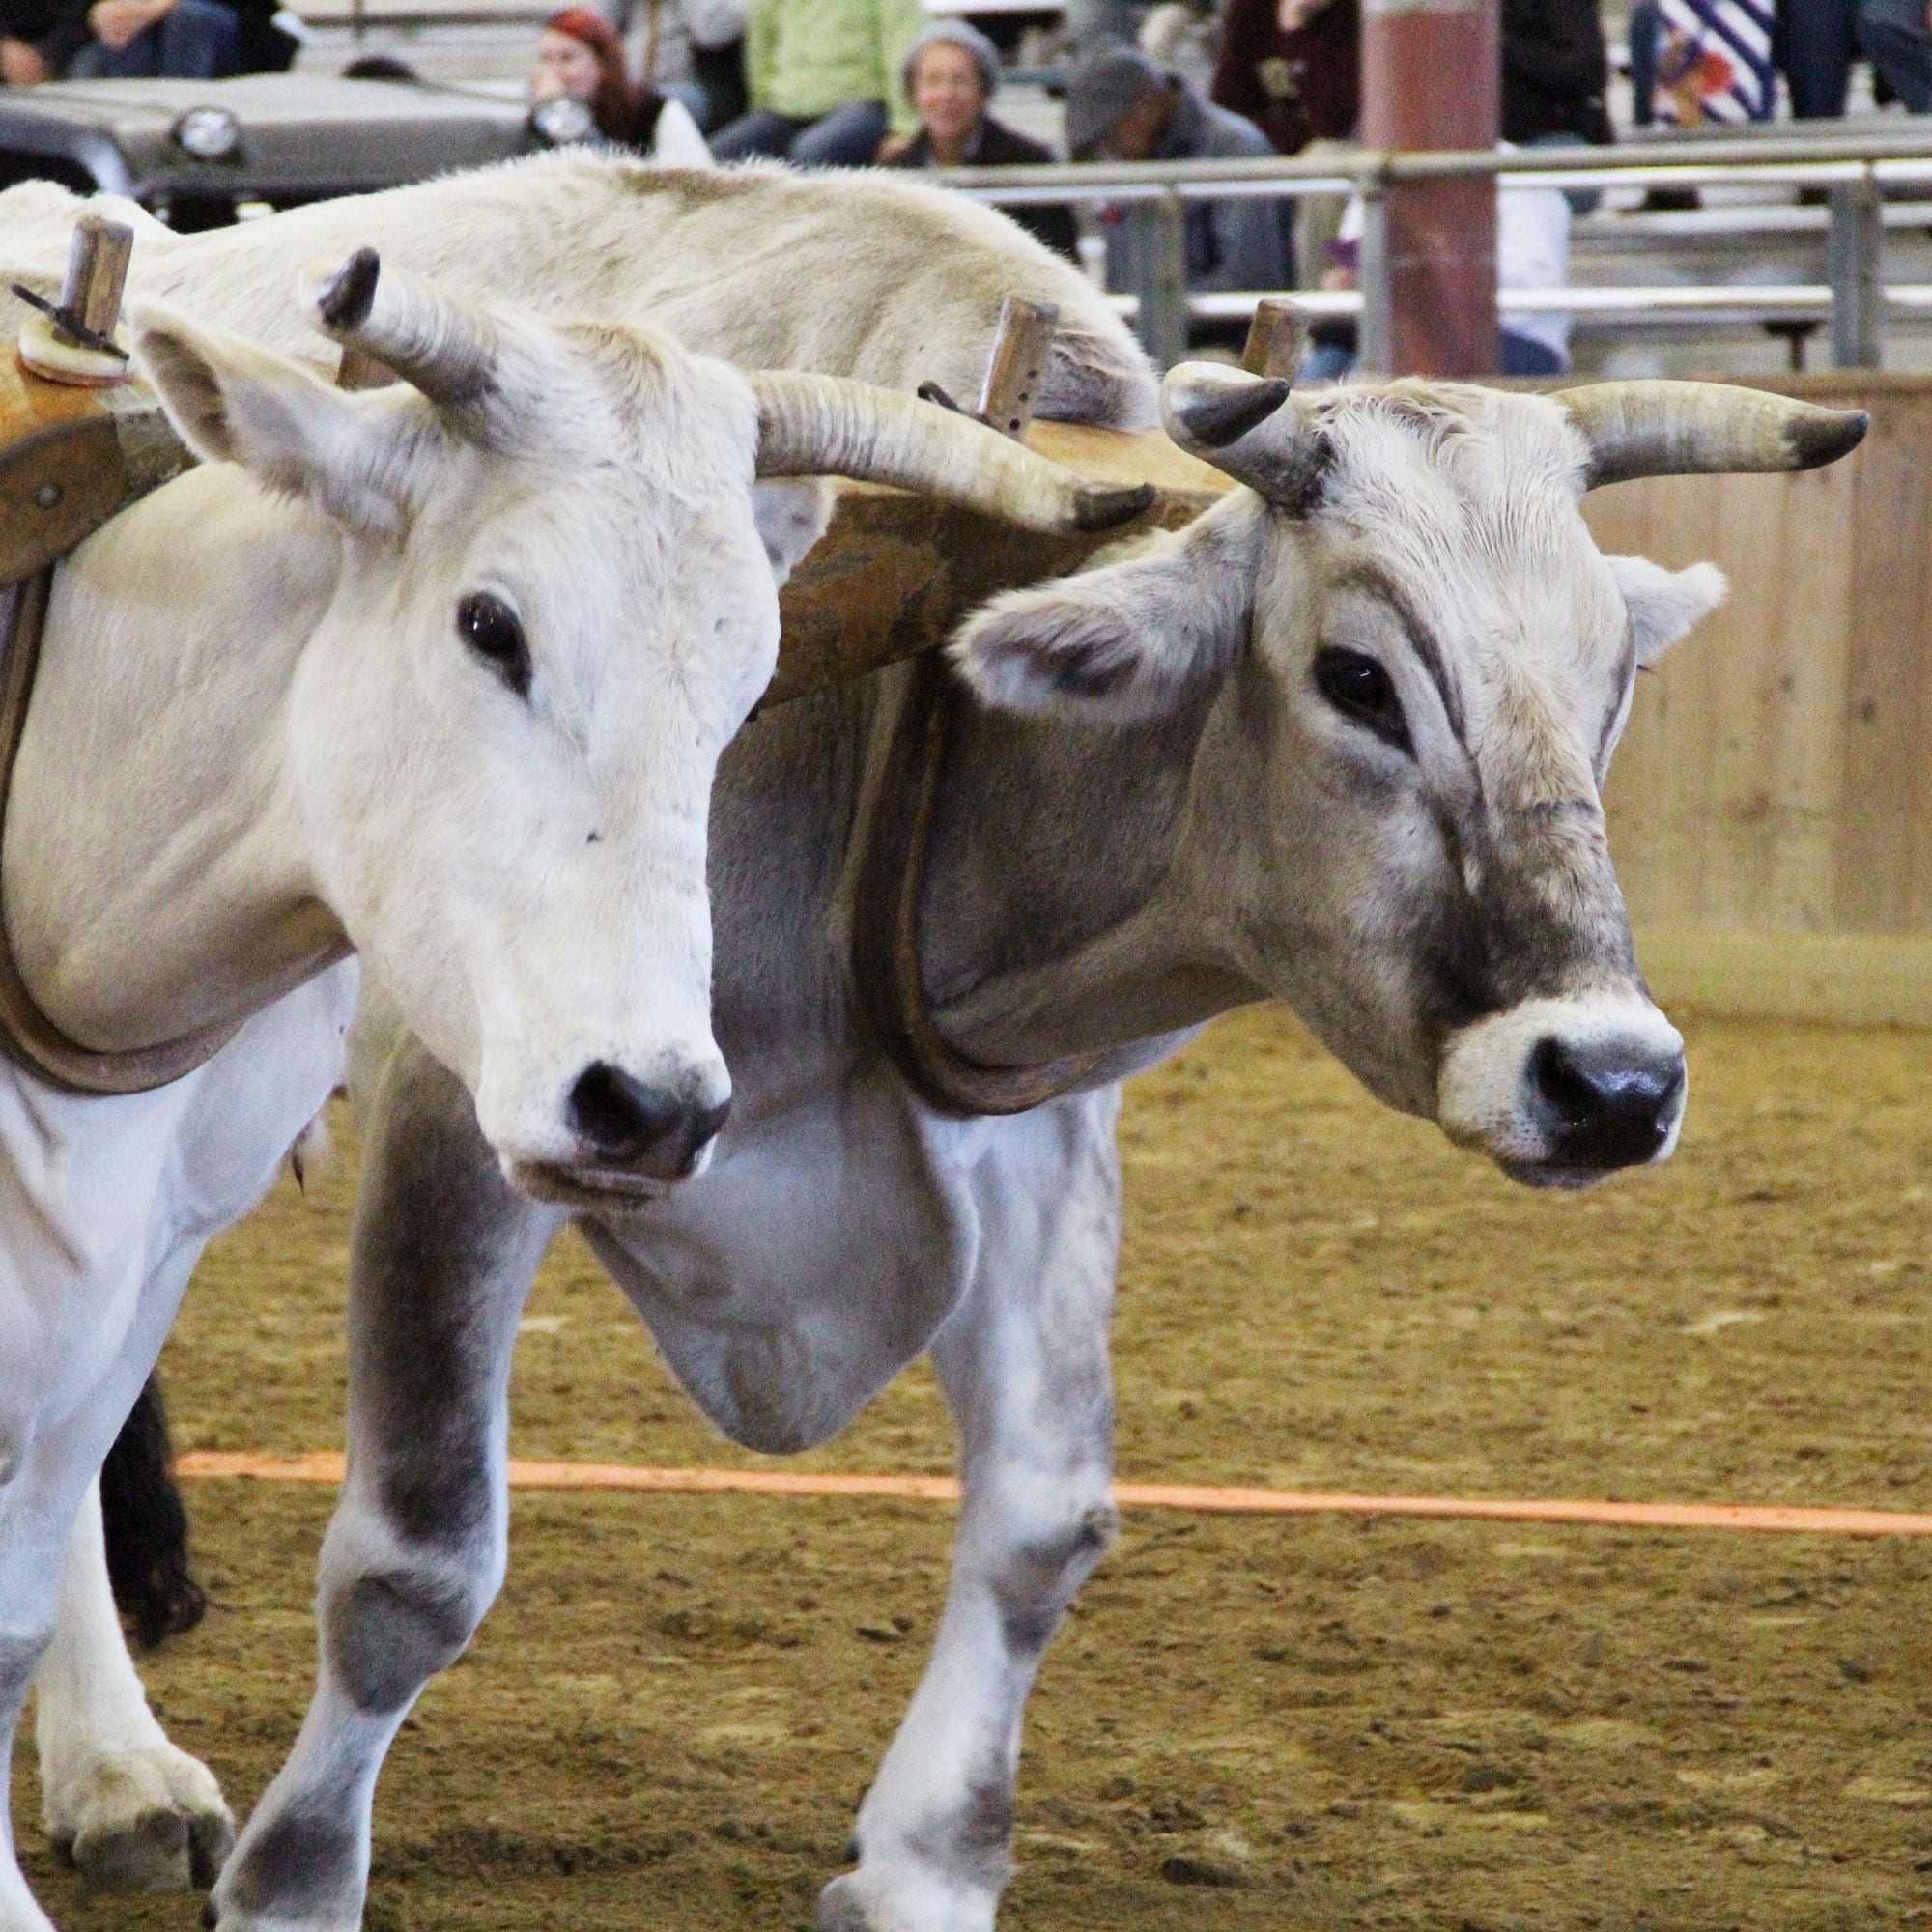 Oxen Pulling at the Topsfield Fair